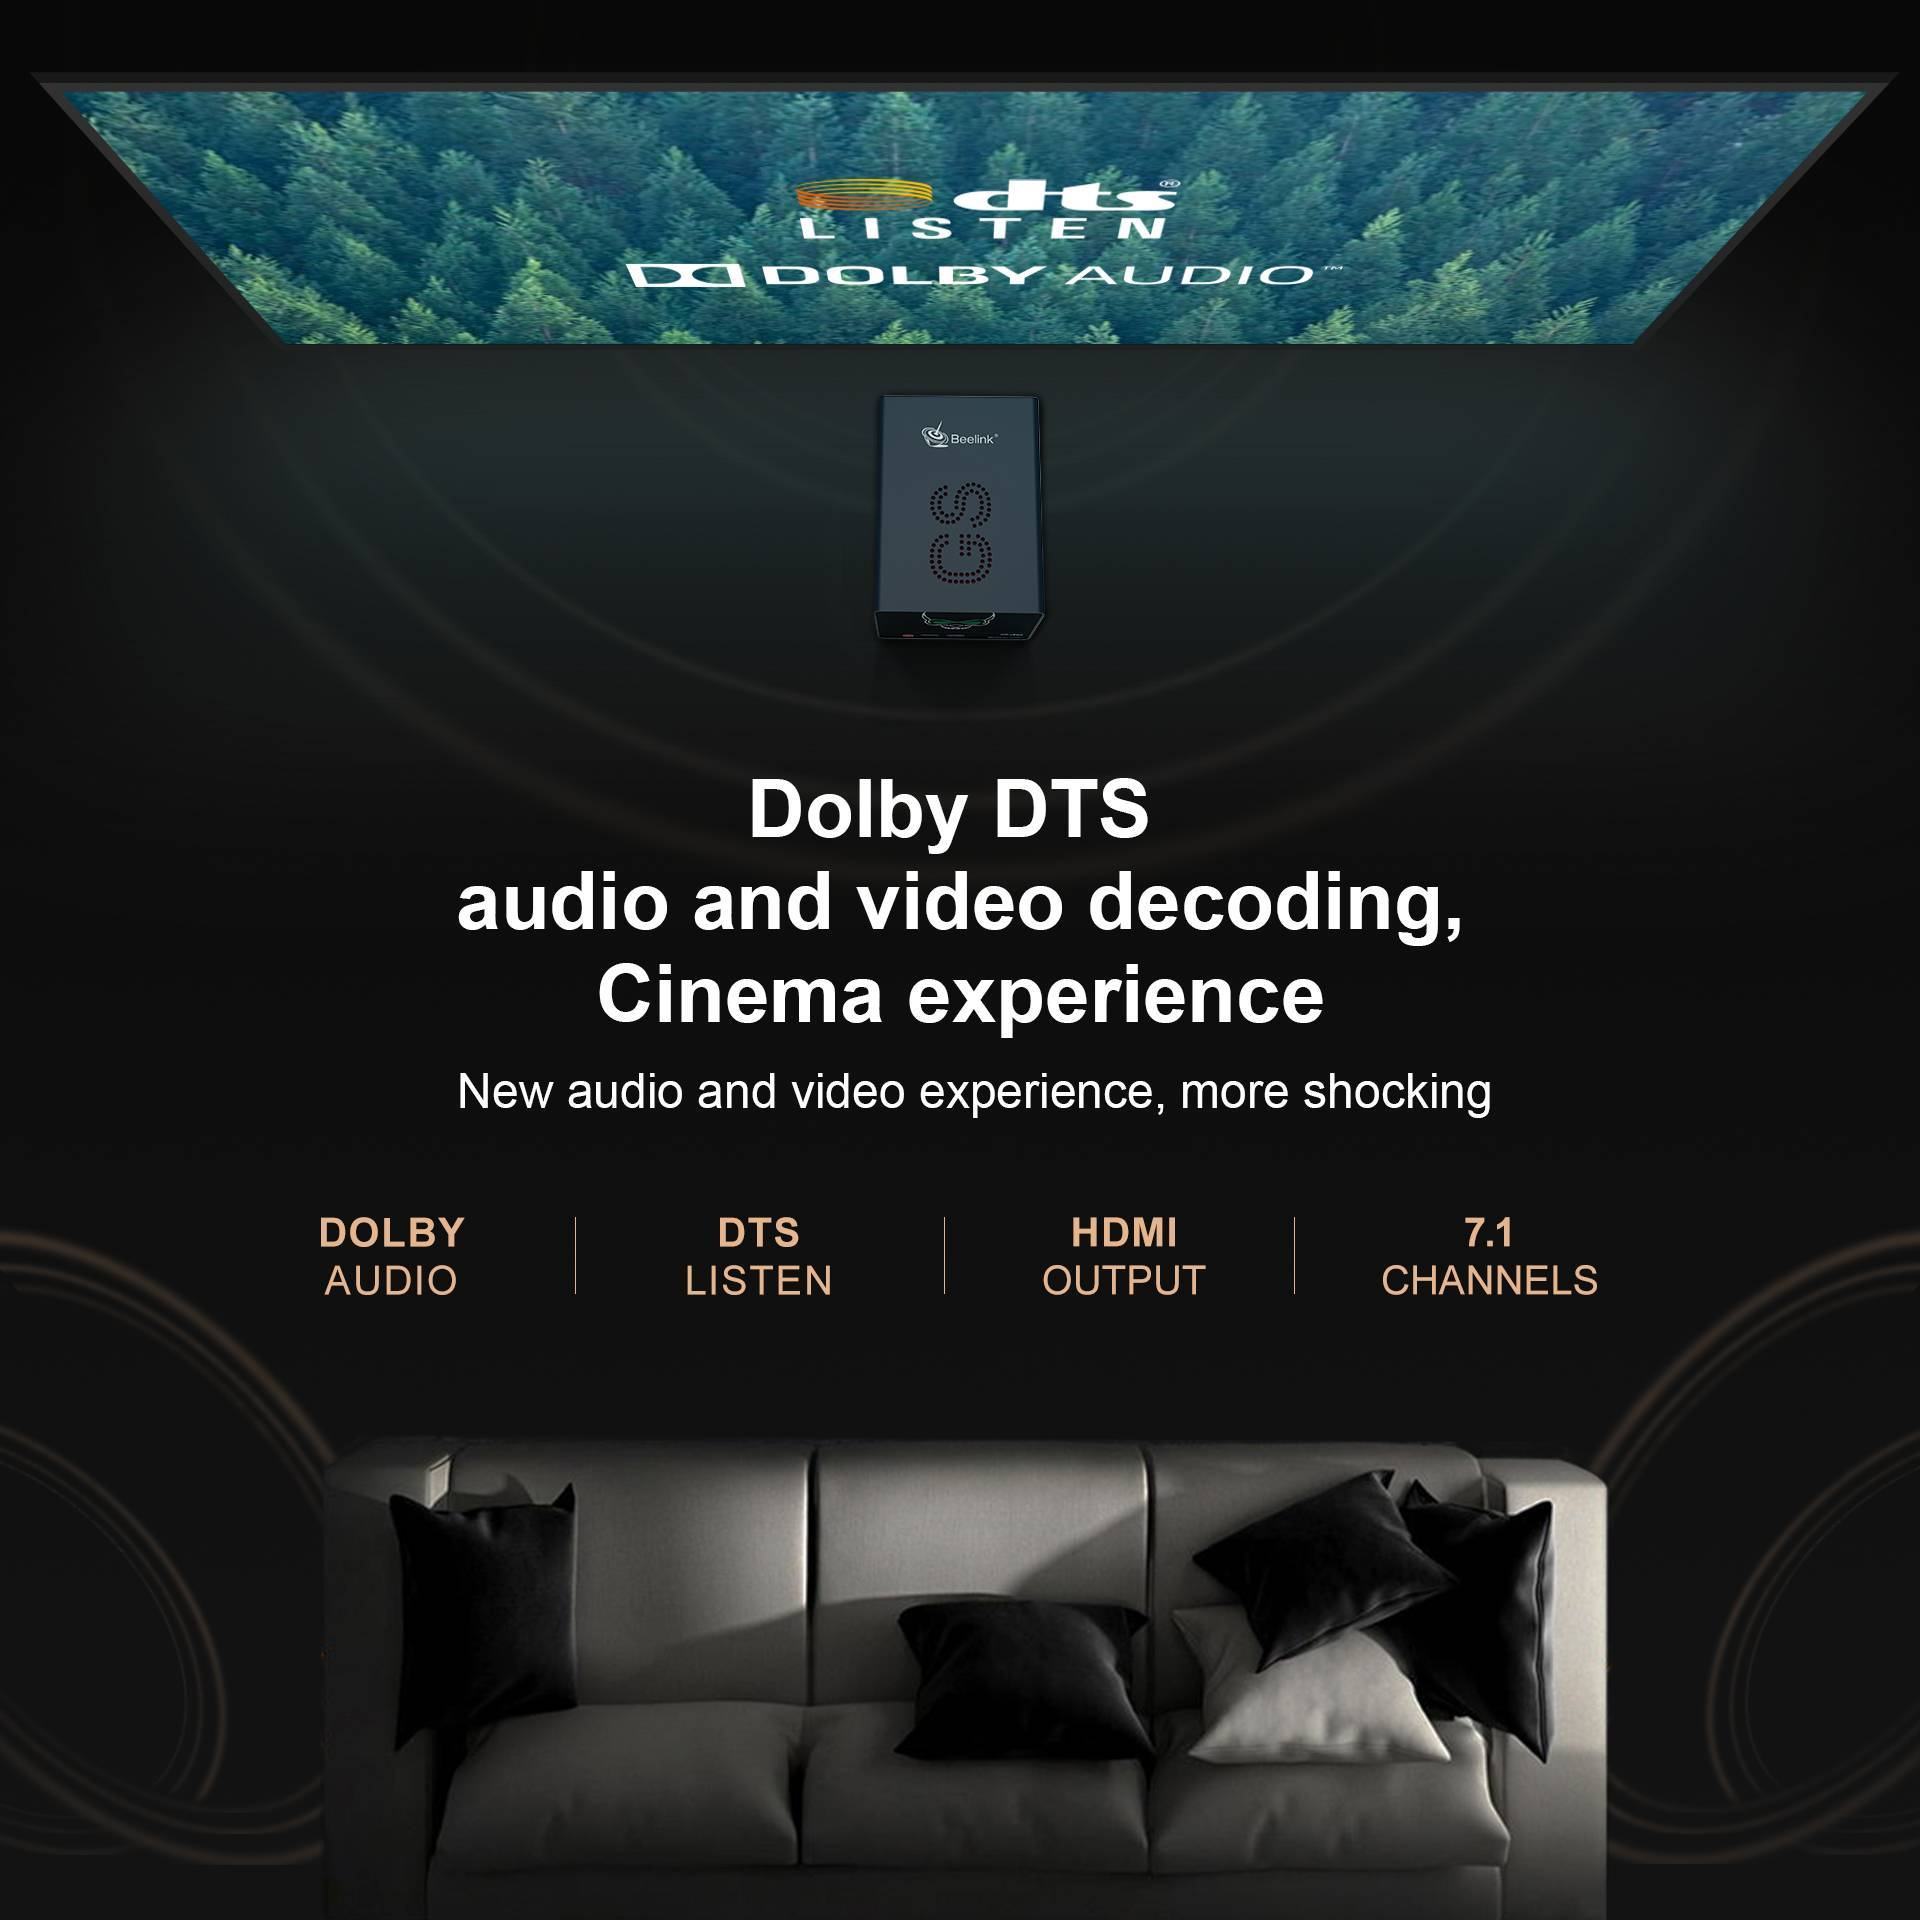 Beelink GS-King X - Showing Dolby DTS Functionality